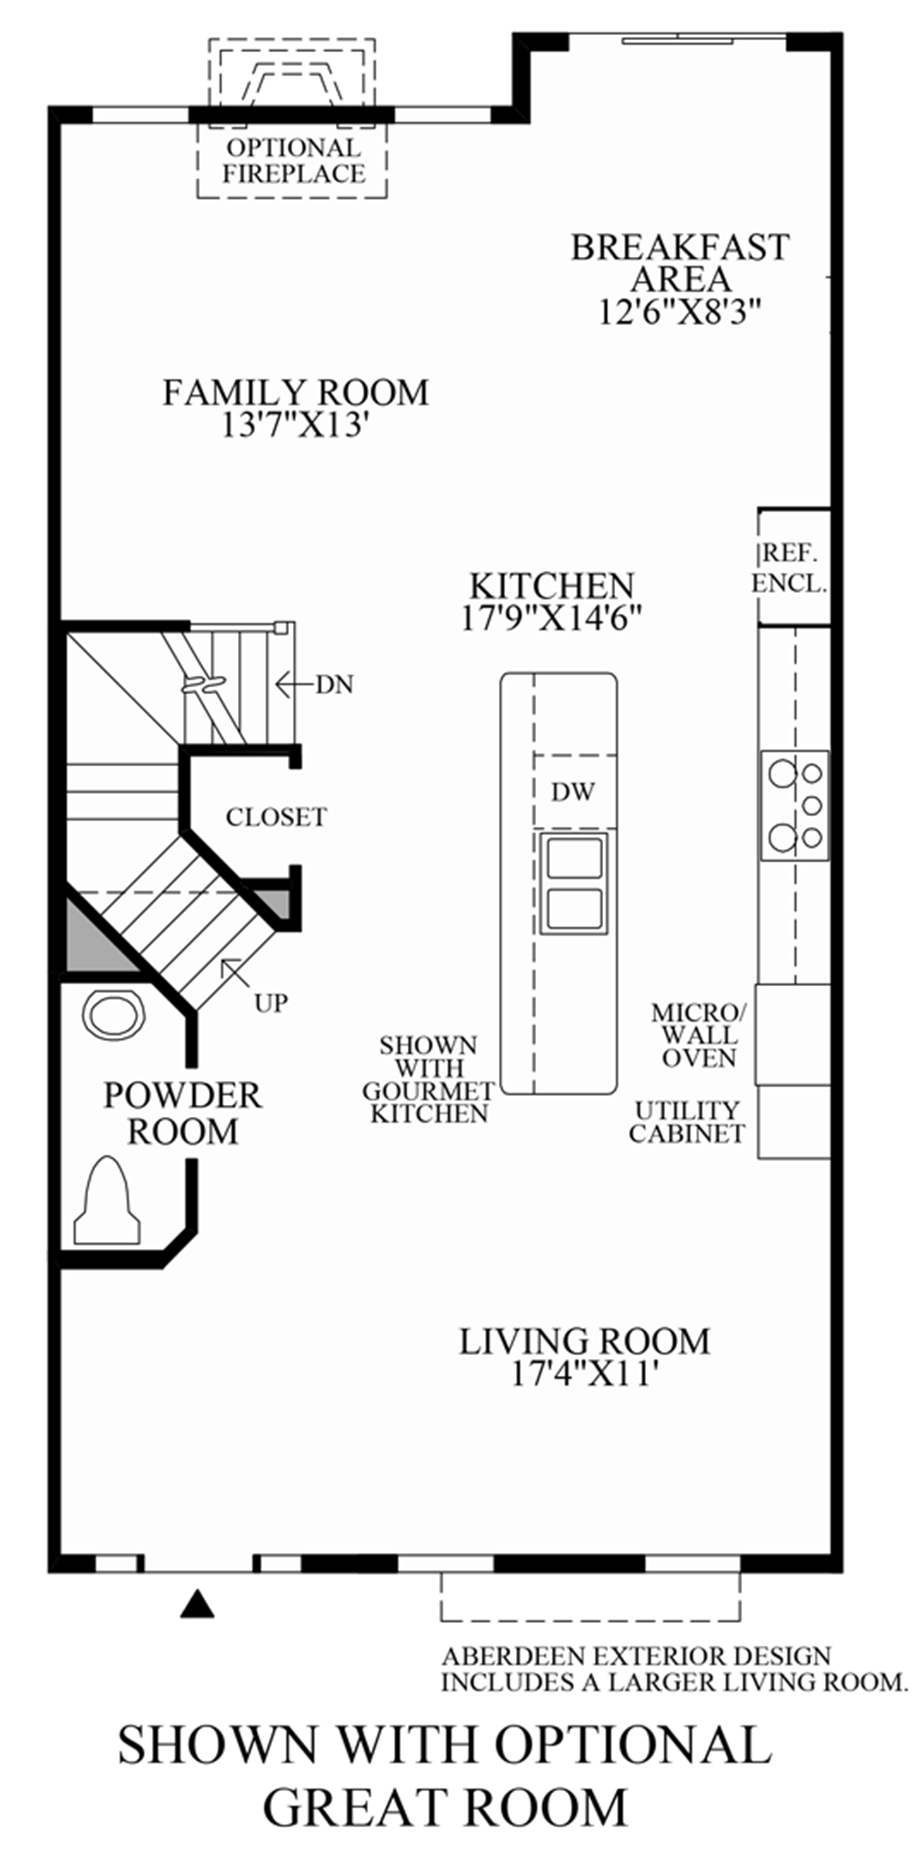 Optional Great Room Floor Plan